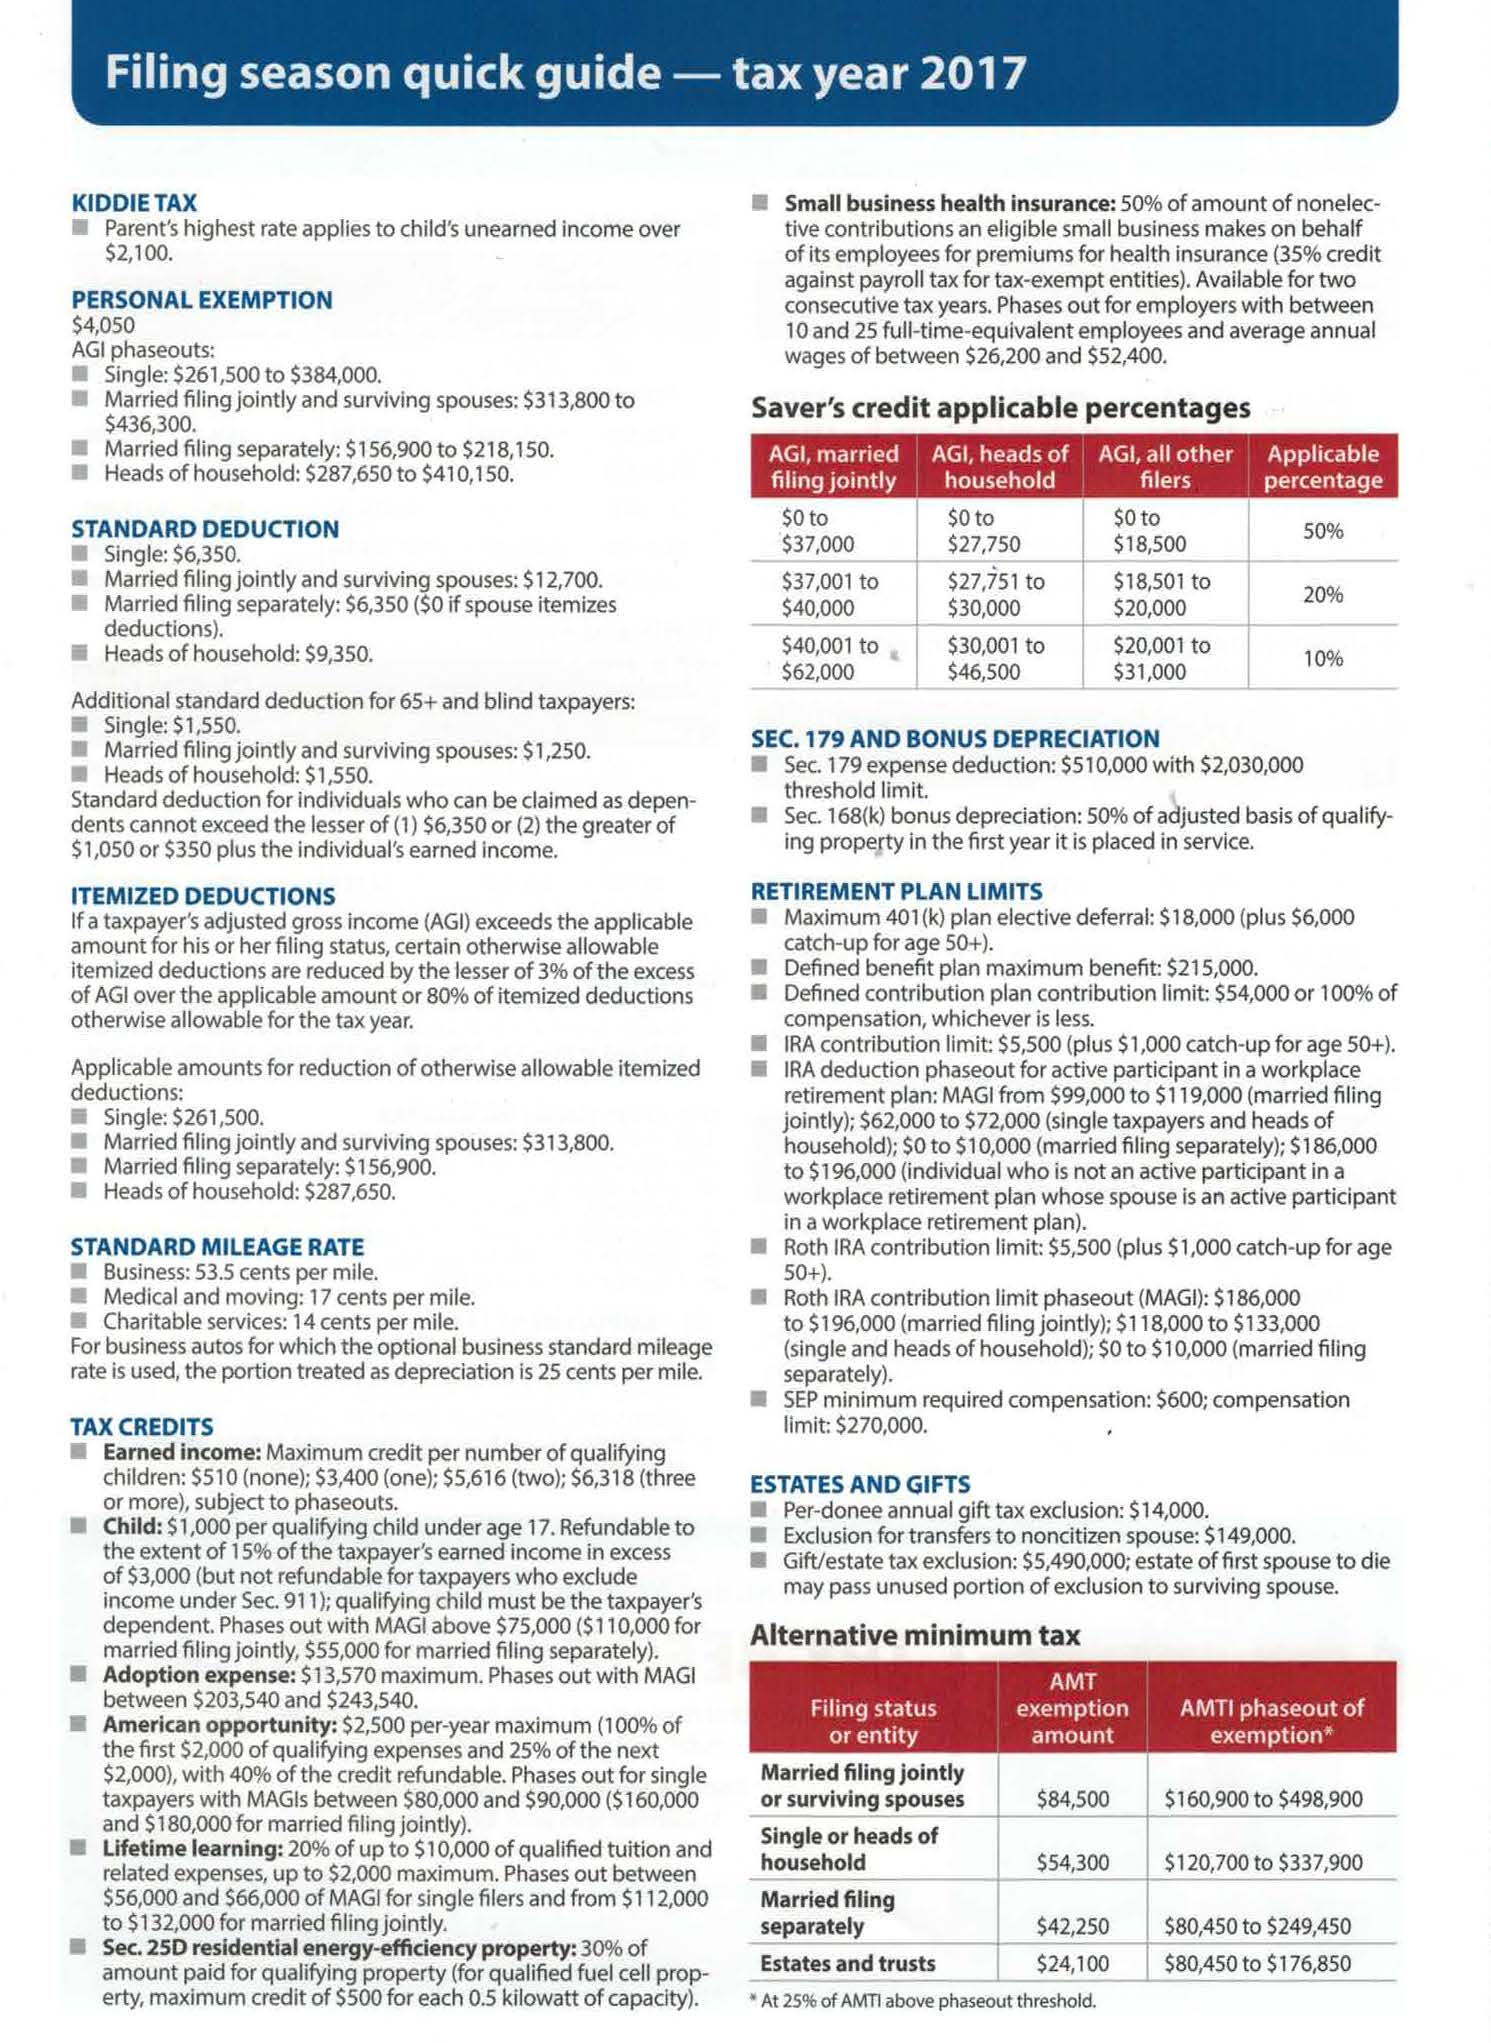 Filing Season Quick Guide for Tax year 2017